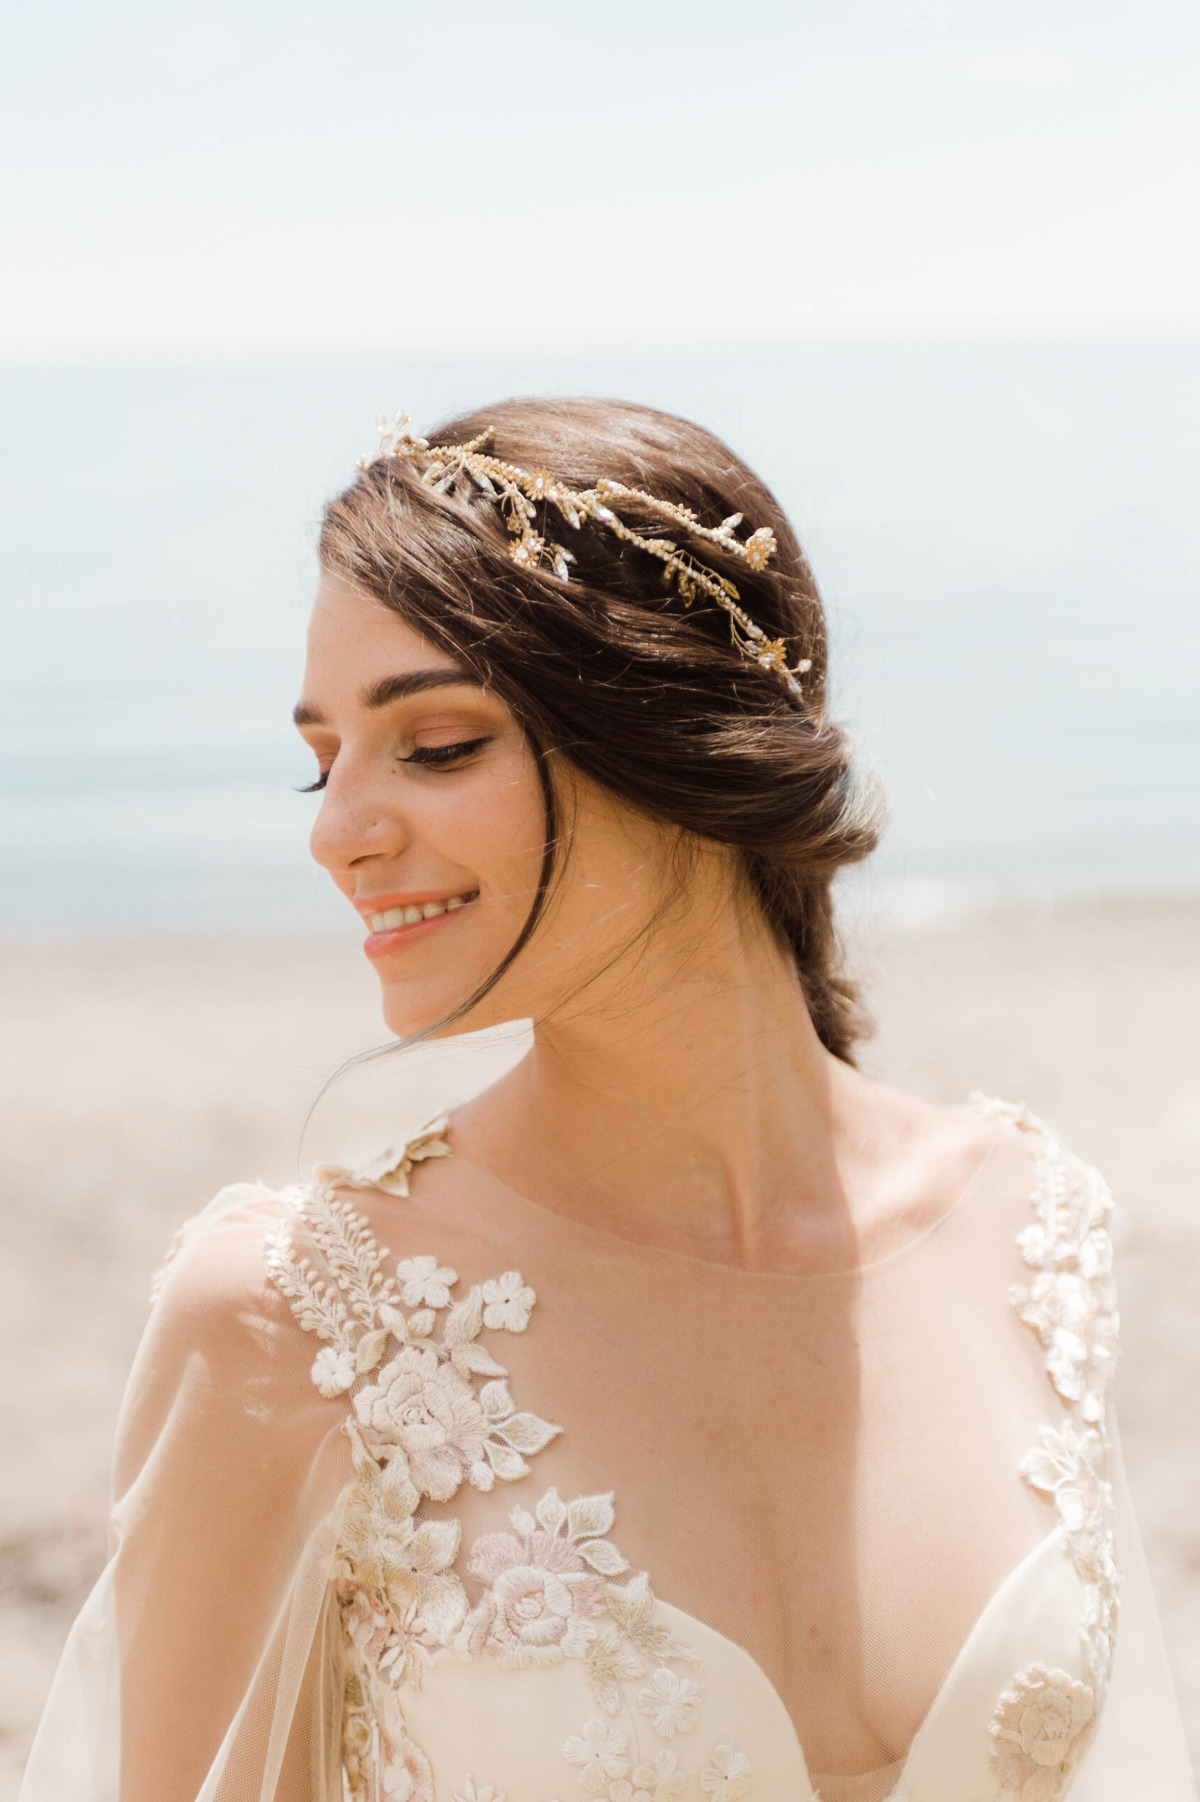 ethereal wedding dress and accessories